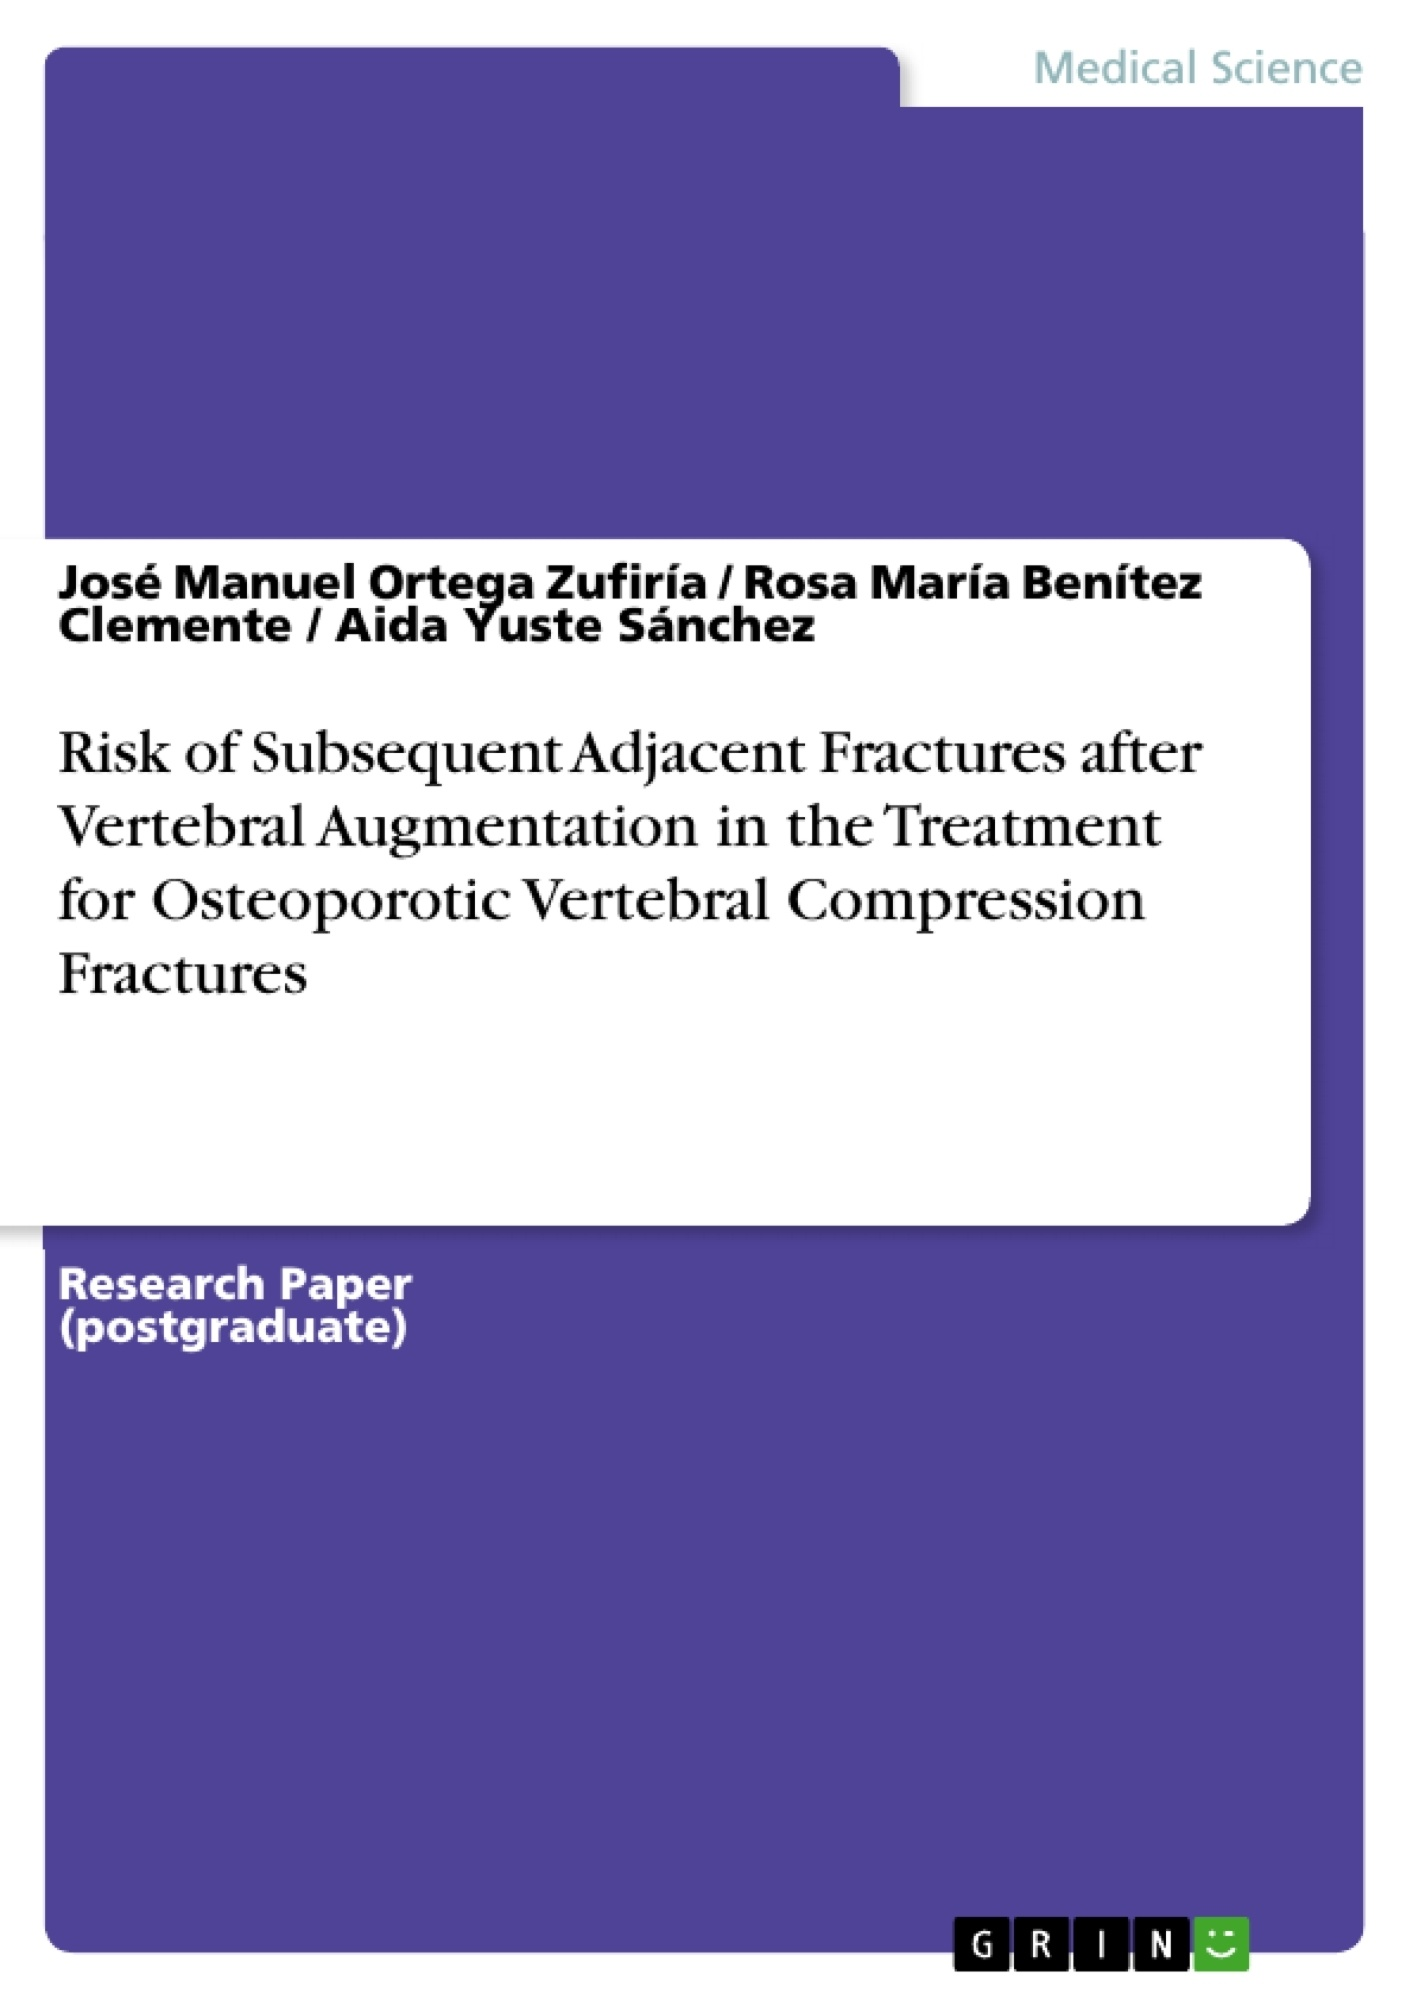 Title: Risk of Subsequent Adjacent Fractures after Vertebral Augmentation in the Treatment for Osteoporotic Vertebral Compression Fractures